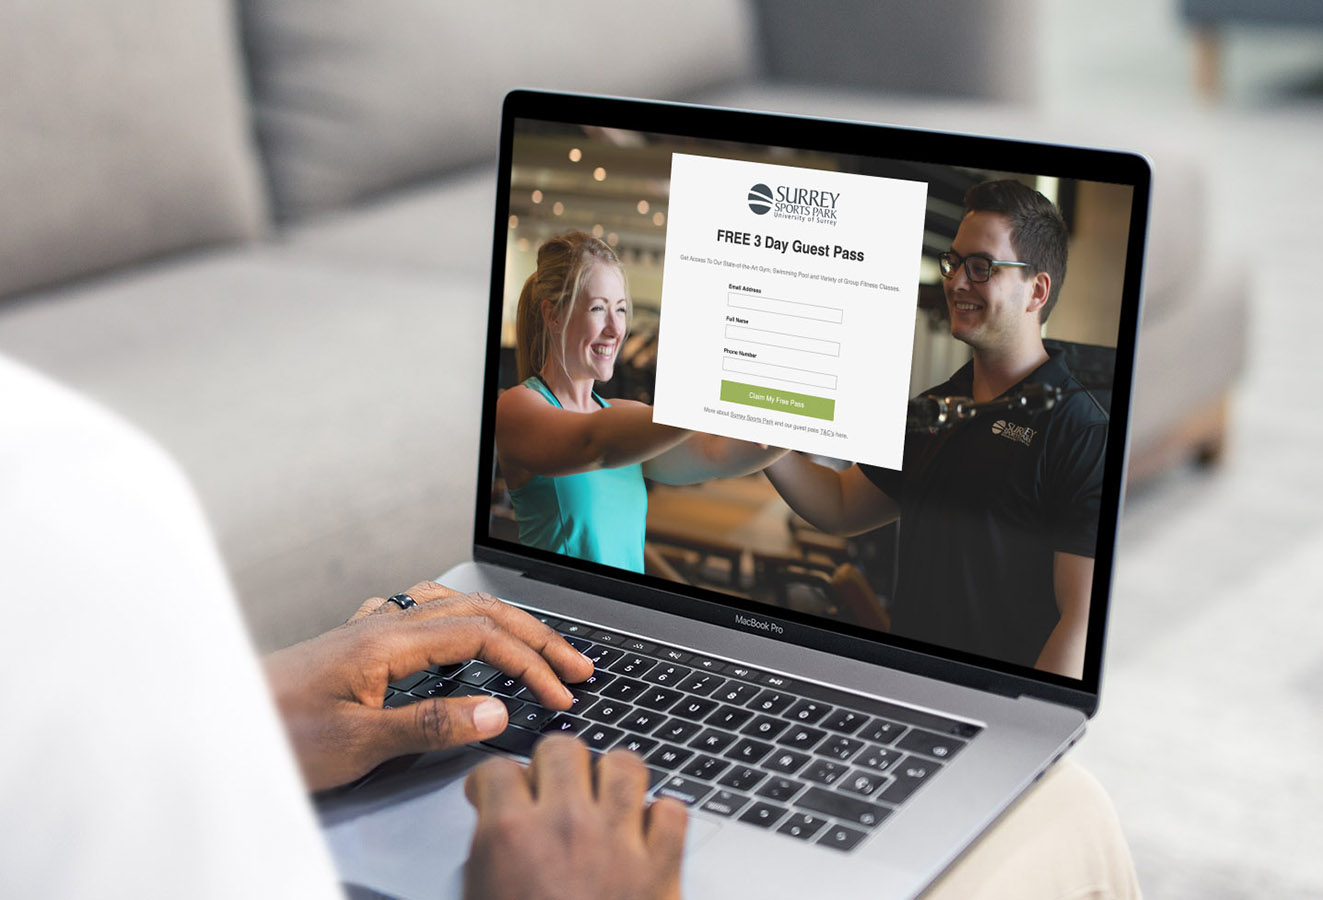 Person viewing free gym pass landing page to opt in on their laptop